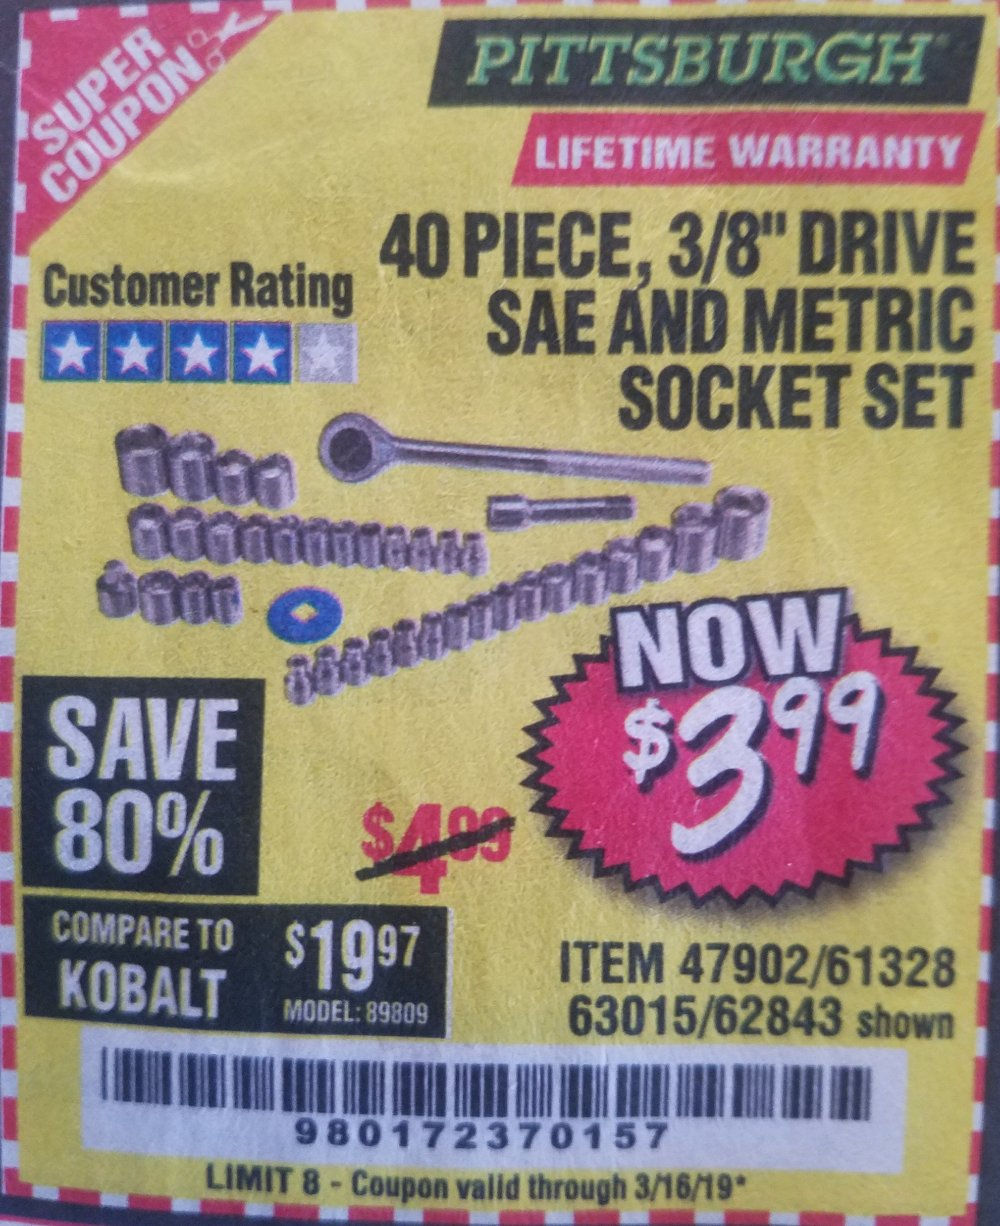 Harbor Freight Coupon, HF Coupons - 40 Piece 3/8